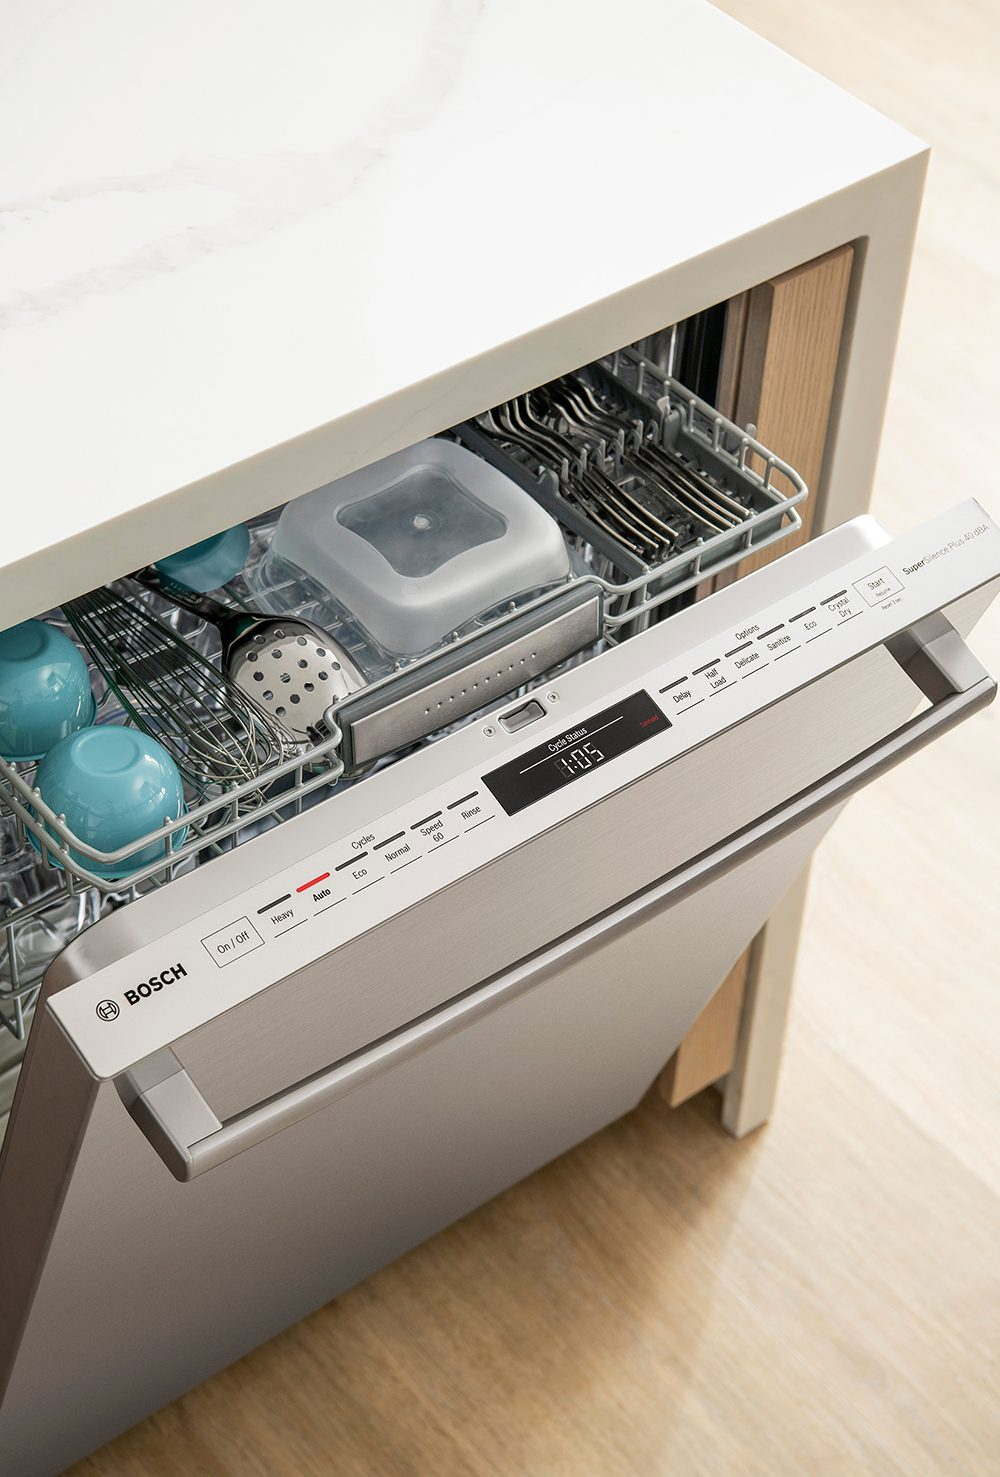 Meet the Bosch 800 Series Dishwasher - Techmomogy